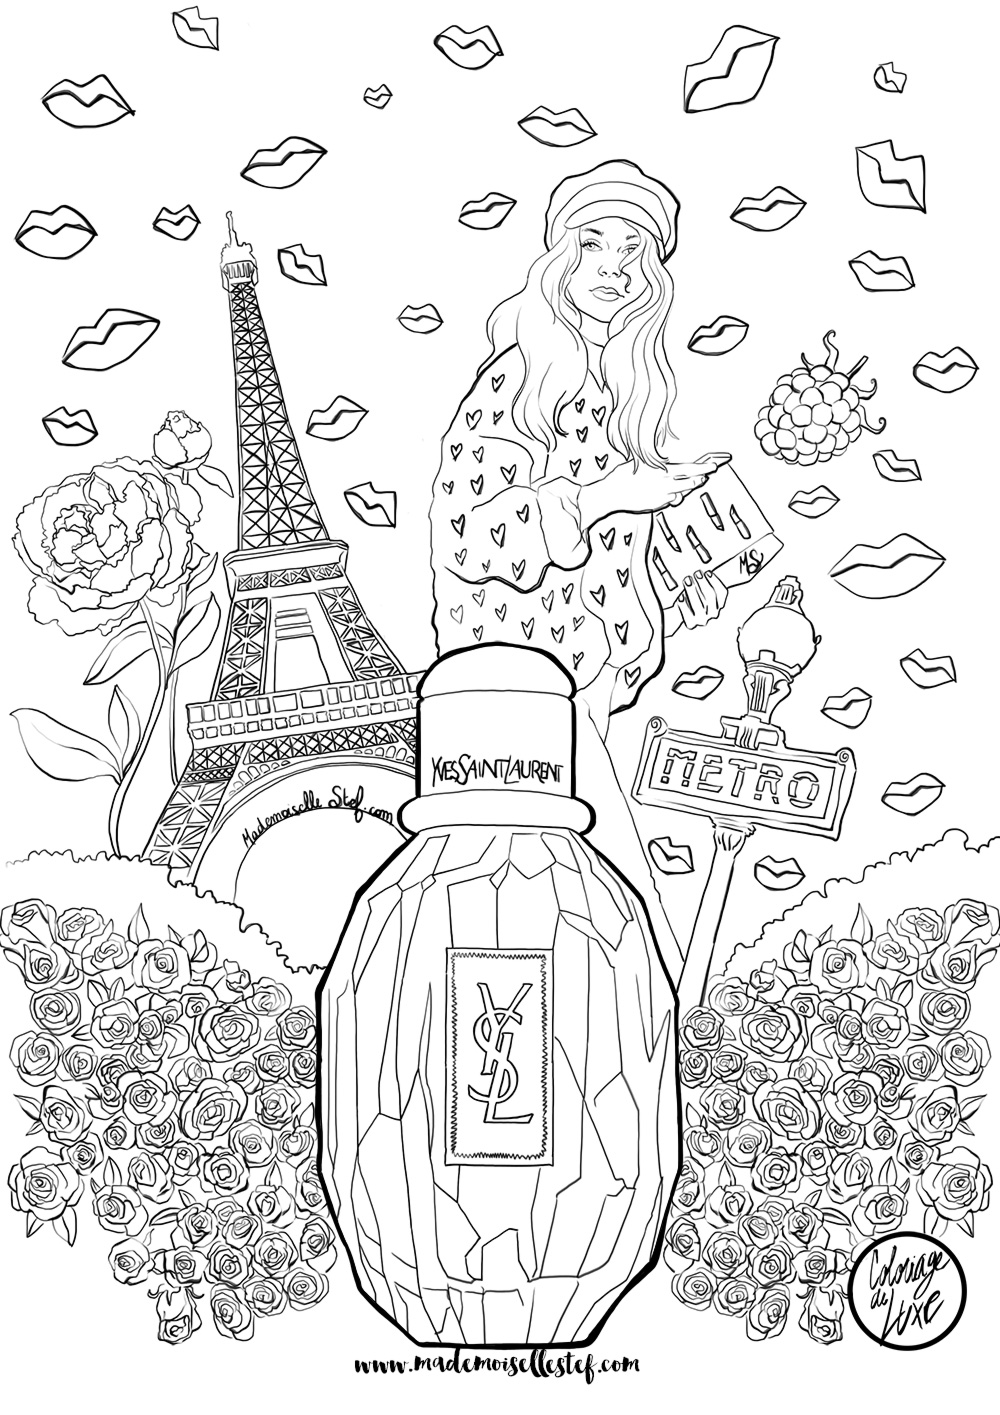 ... Yves Saint Laurent I Mademoiselle Stef - Blog Mode, Dessin, Paris